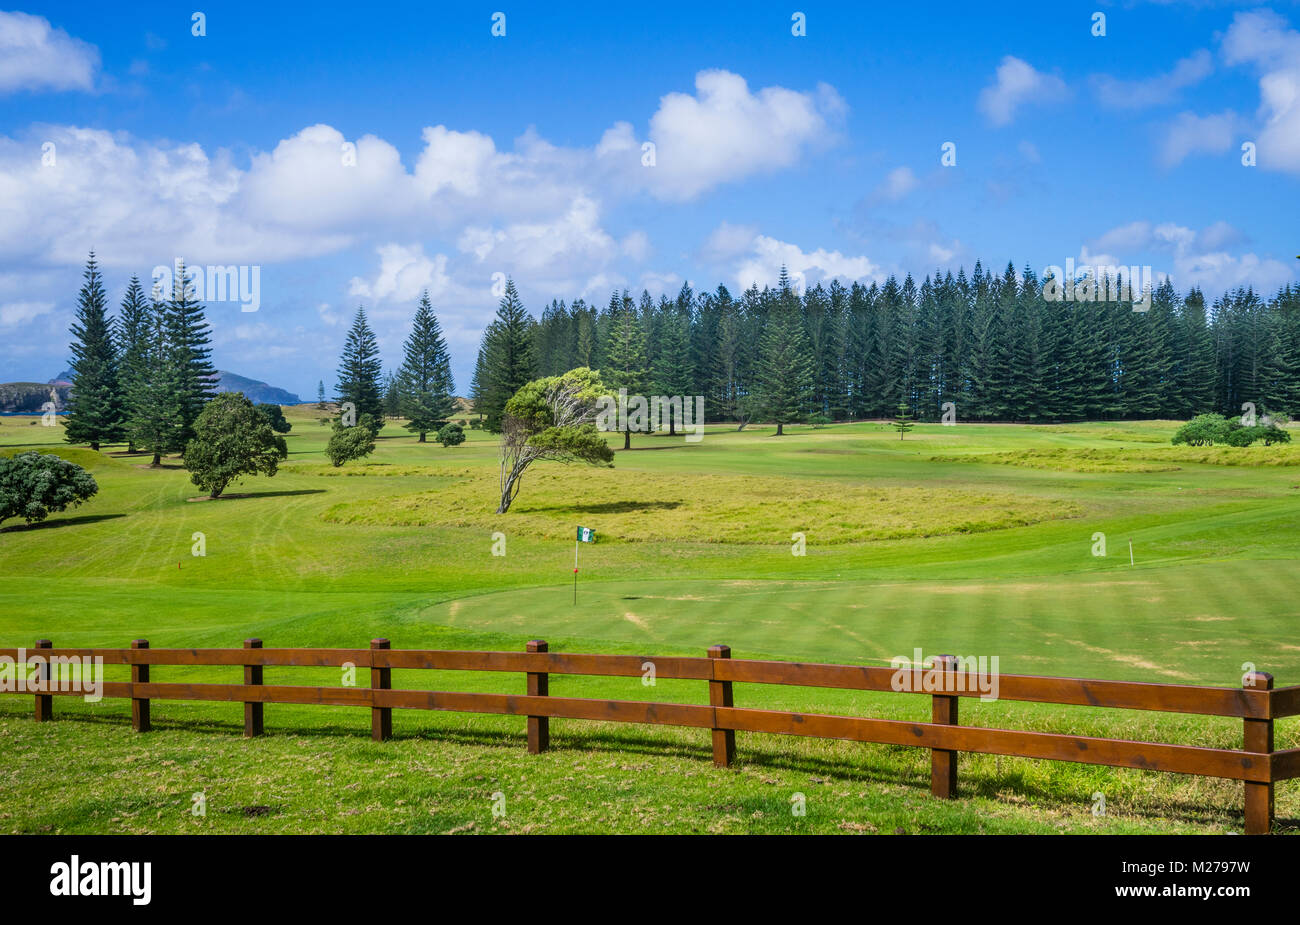 Norfolk Island, Australian external territory, Kingston, scenic putting green at the Norfolk Island Golf course - Stock Image